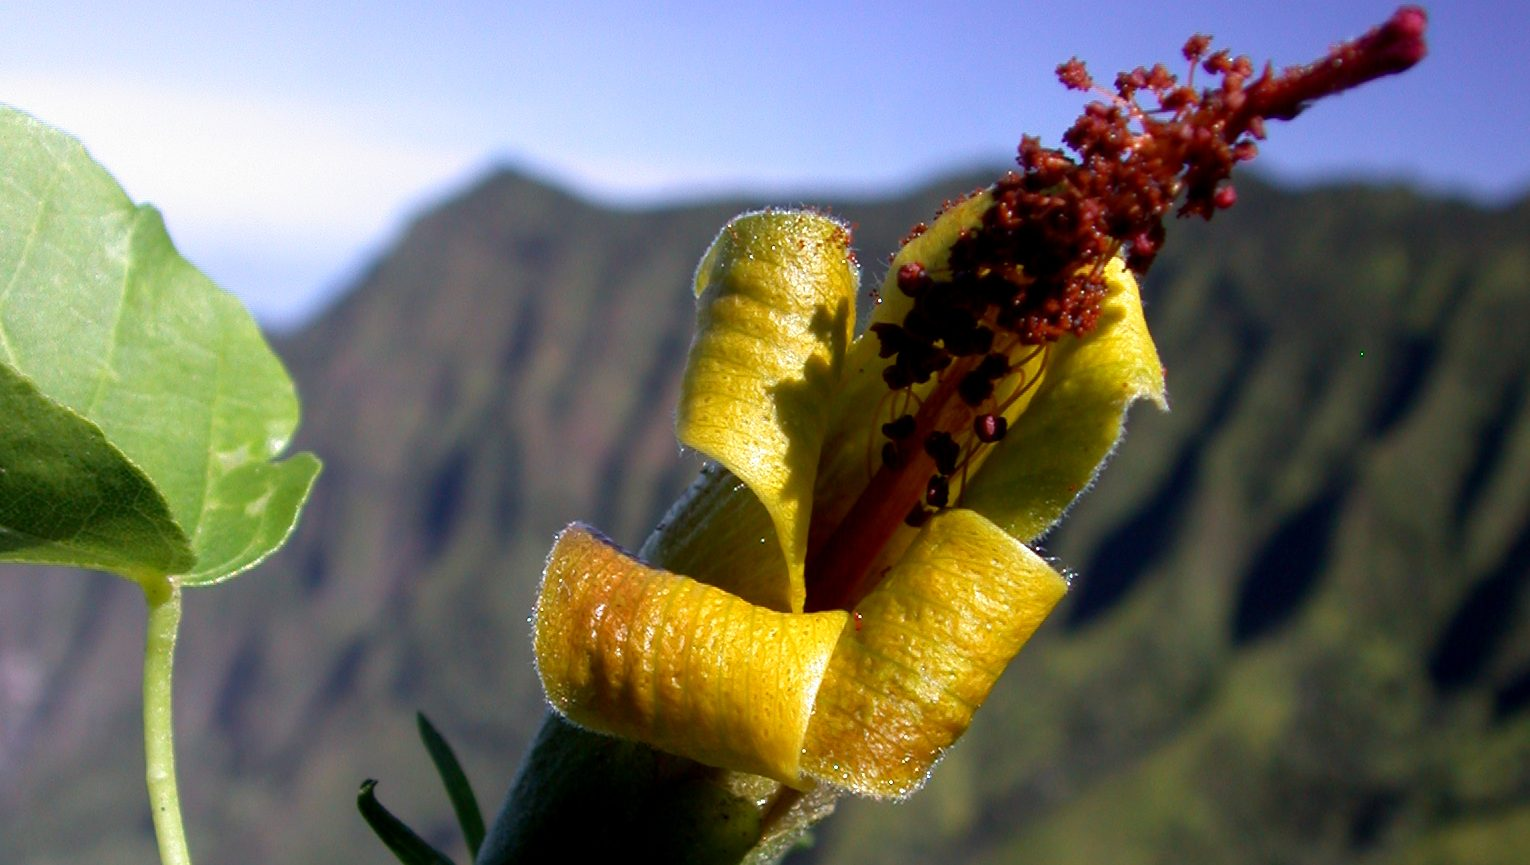 qz.com - Zoë Schlanger - Botanists rediscover a rare Hawaiian flower thought to be extinct-thanks to a drone